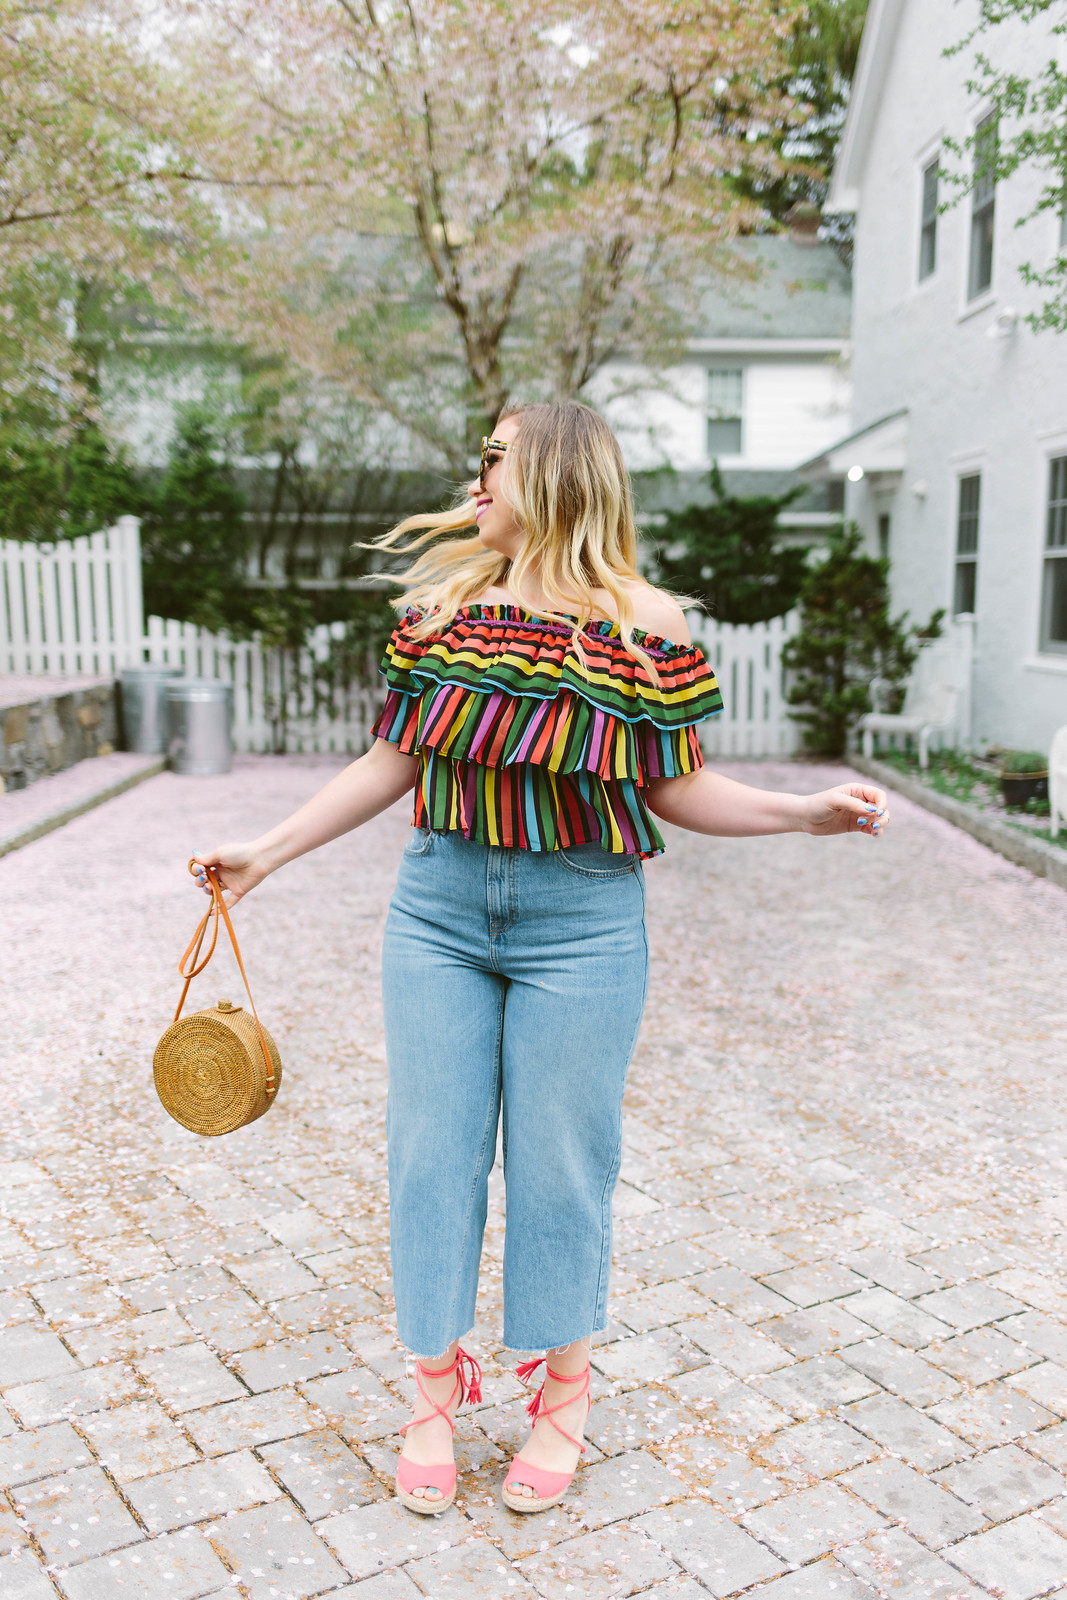 Rainbow Striped Crop Top Topshop High Waist Wide Leg Crop Jeans Rattan Round Bag Red Espadrilles Spring Summer Outfit Inspiration Jackie Giardina